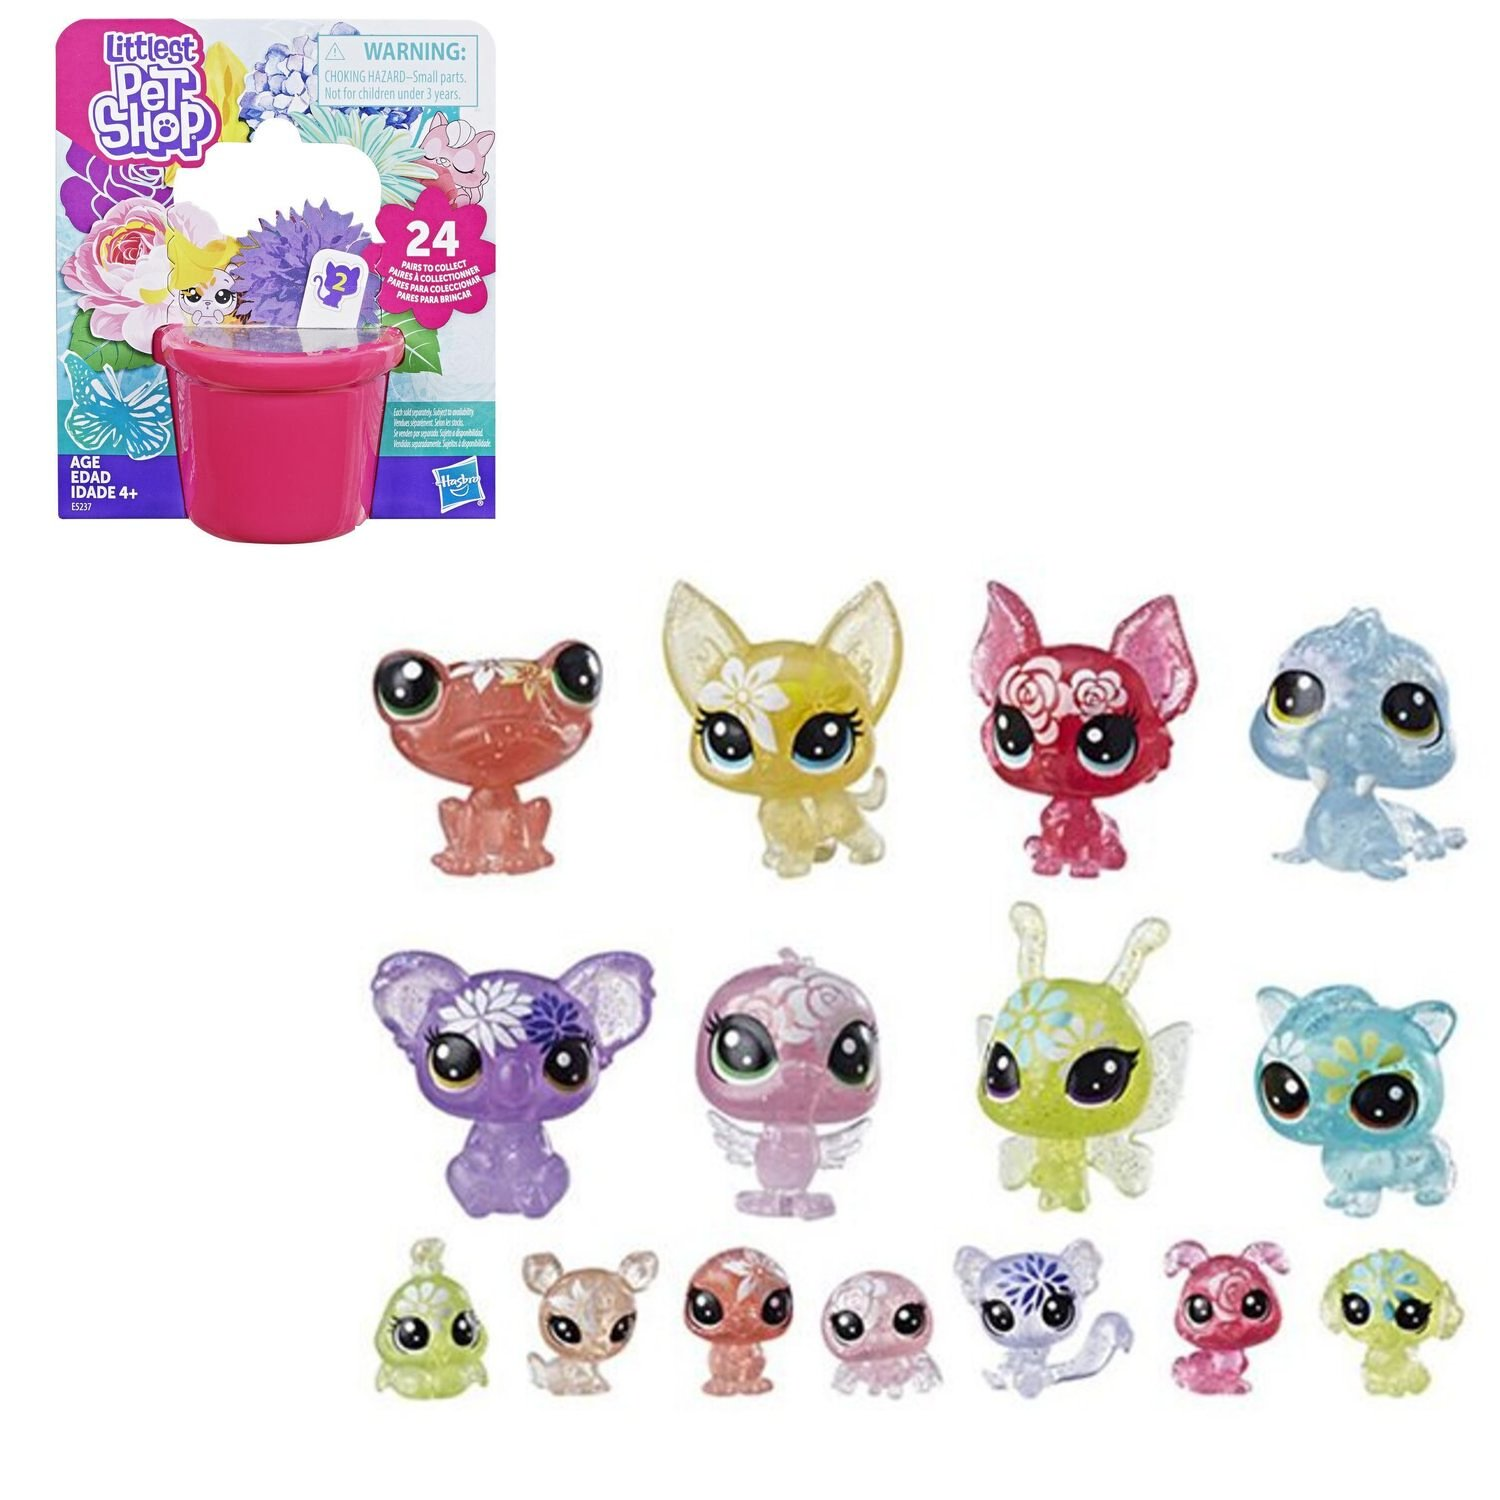 Littlest Pet Shop | Blooming Bouquet | Includes a Free Gift with Purchase